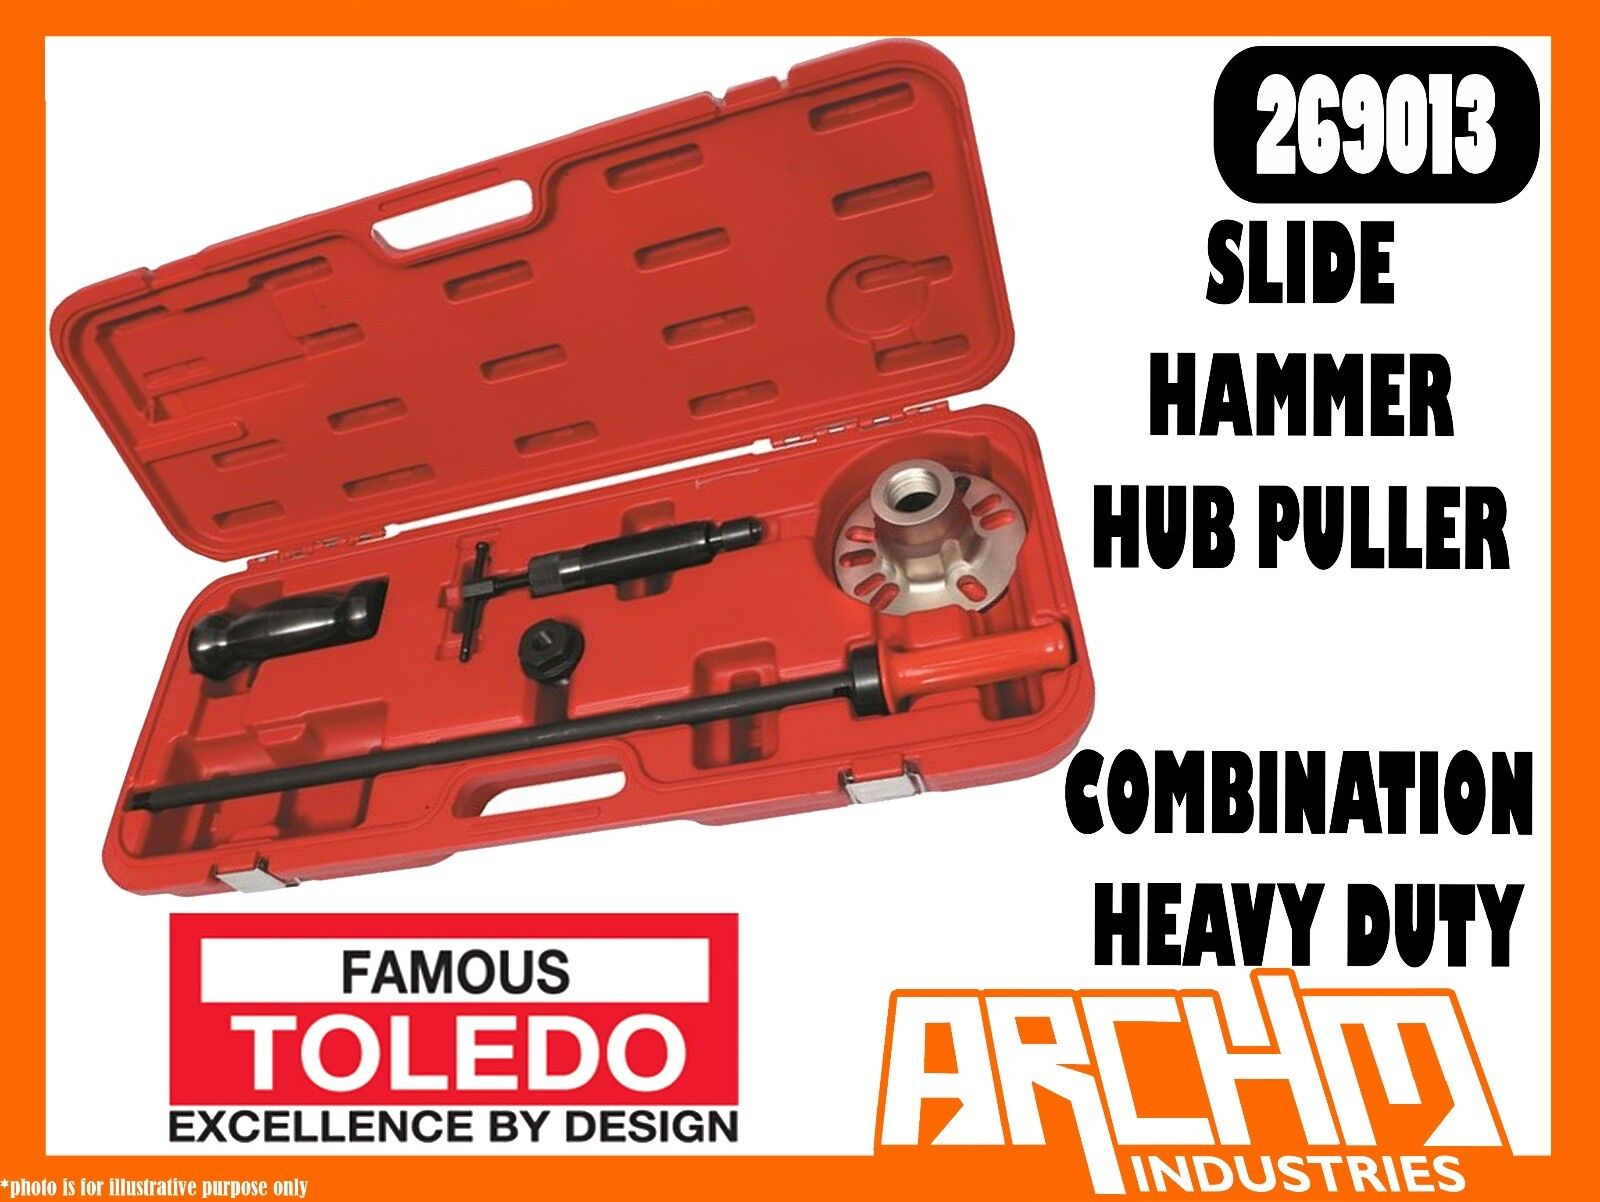 TOLEDO 269013 - SLIDE HAMMER HUB PULLER COMBINATION HEAVY DUTY - HYDRAULIC